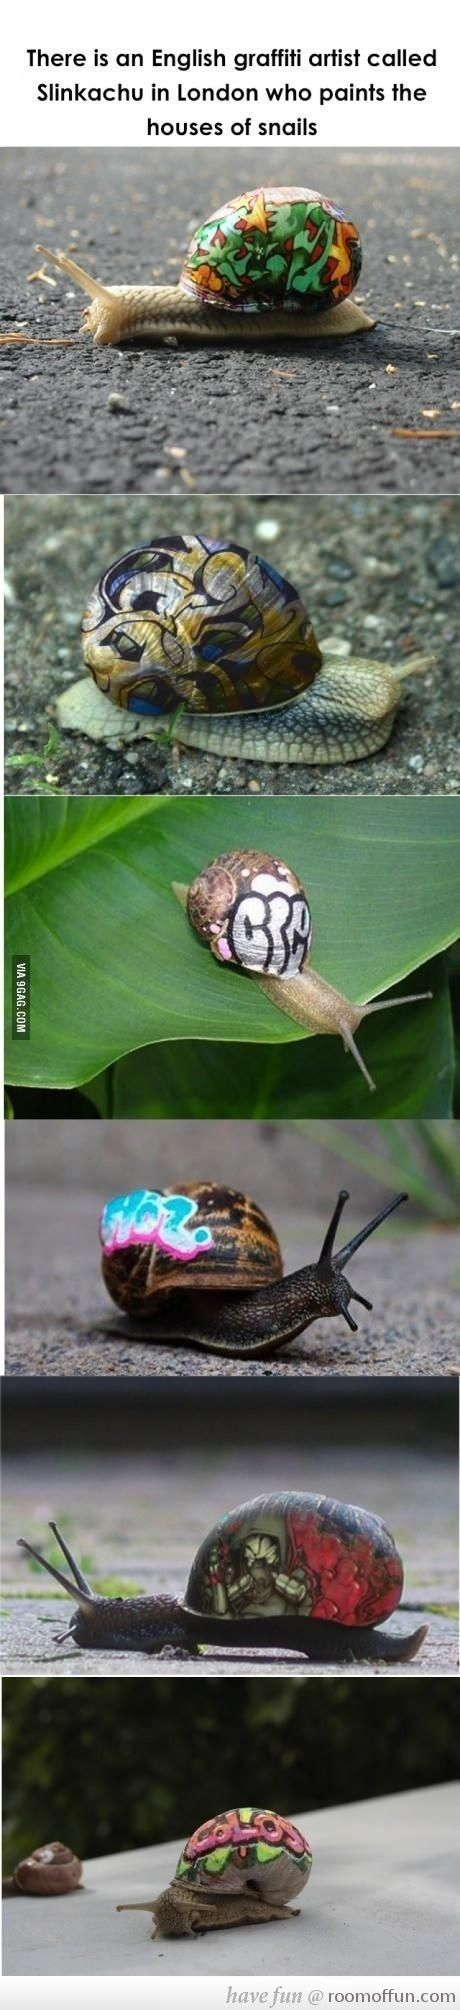 Snail Graffiti - There is a graffiti artist from London that paints on the shells of snails! #cortes #tattoogirl #tatuajes #tatto